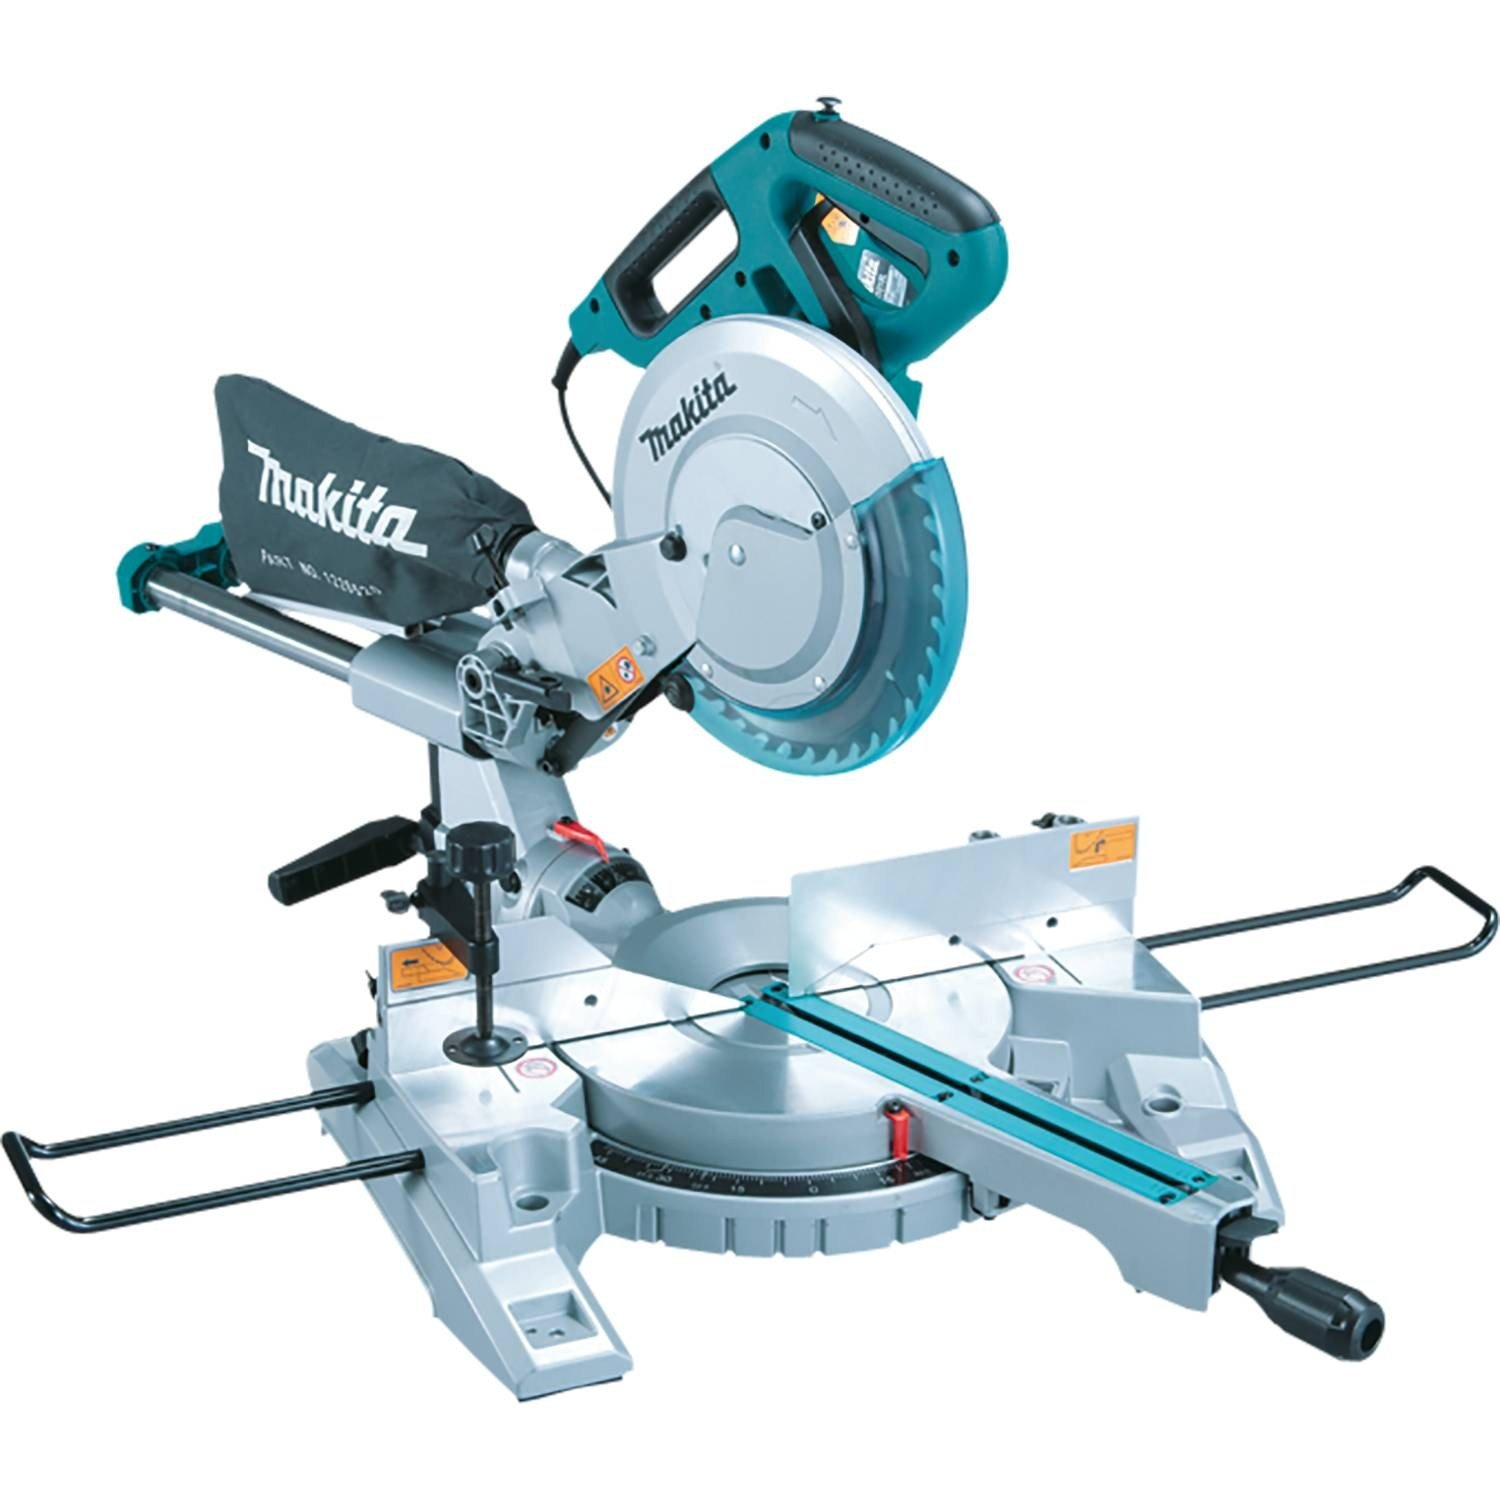 2. Makita LS1018 Dual Slide Compound Miter Saw